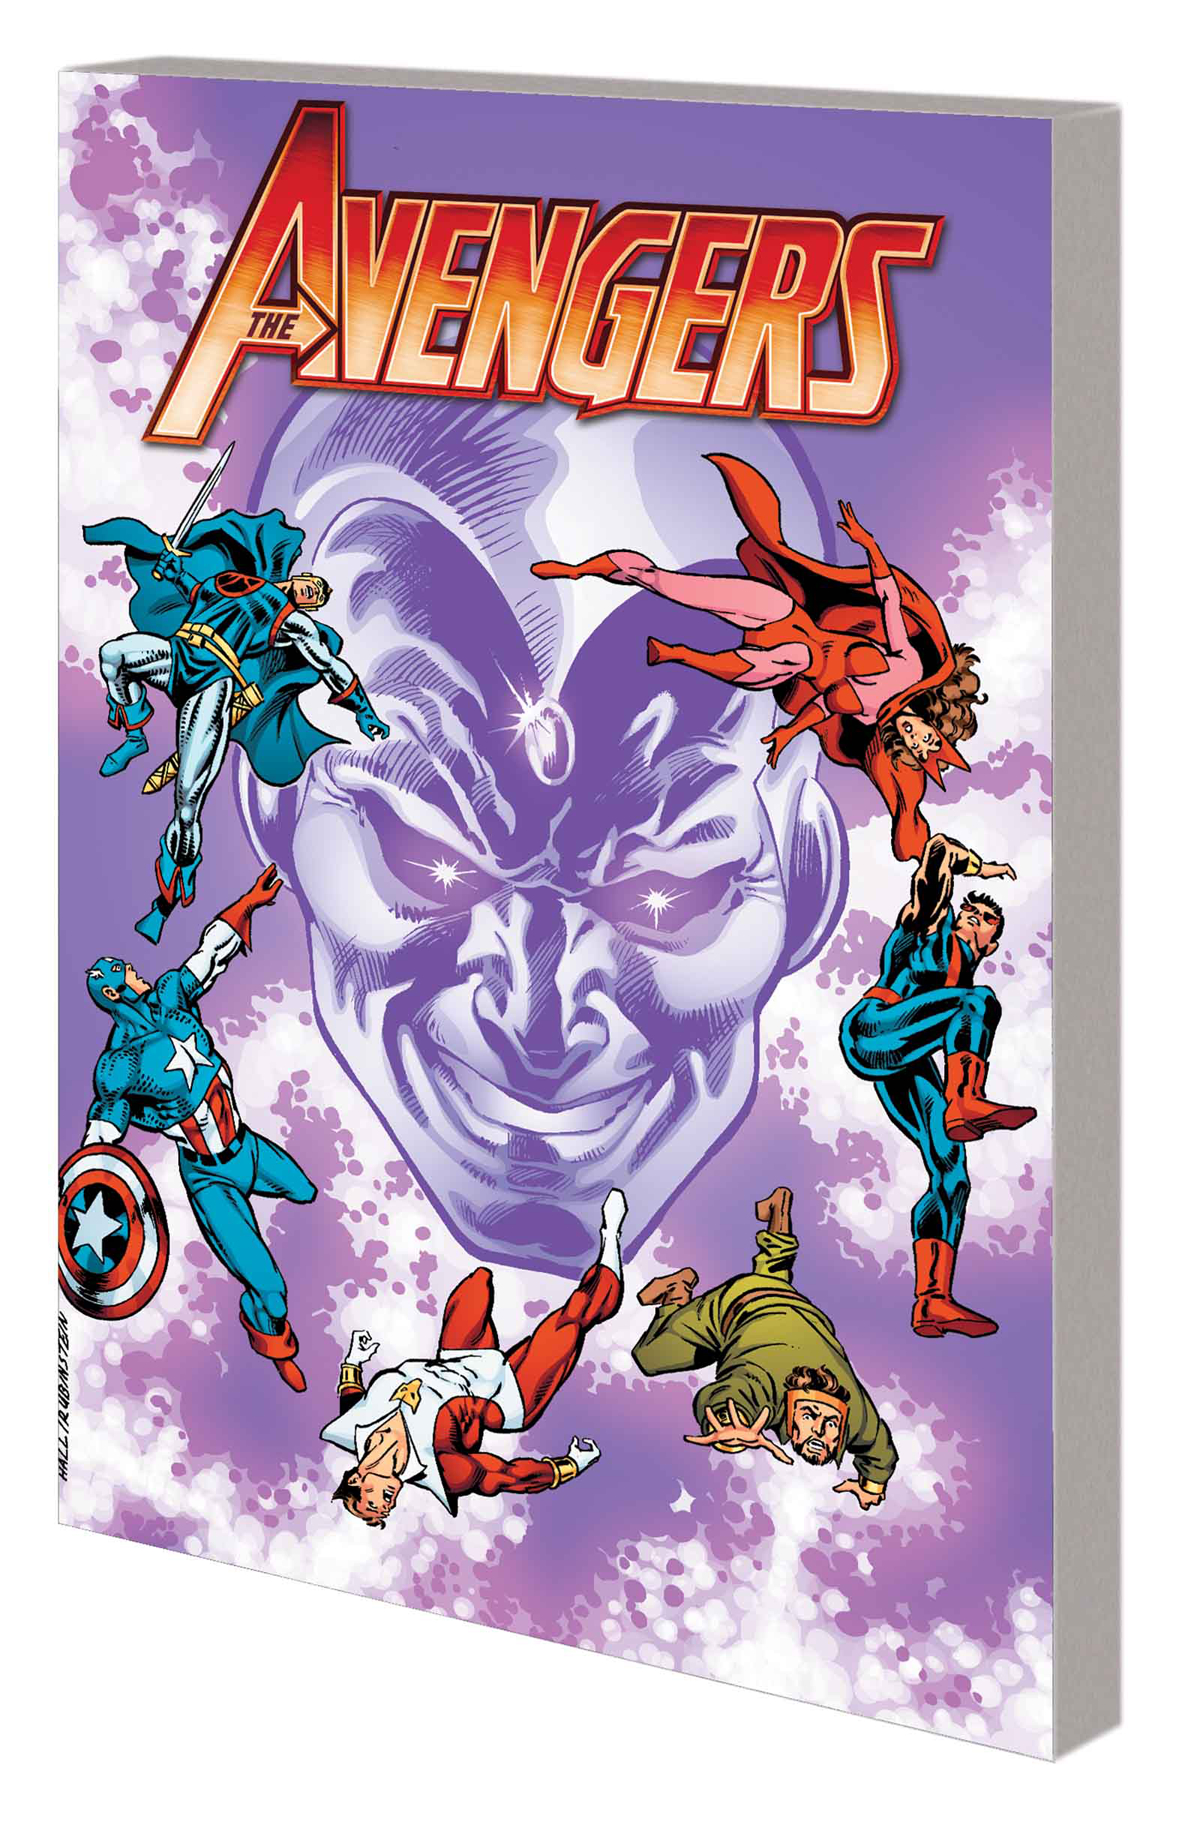 AVENGERS TP BOOK 02 ABSOLUTE VISION